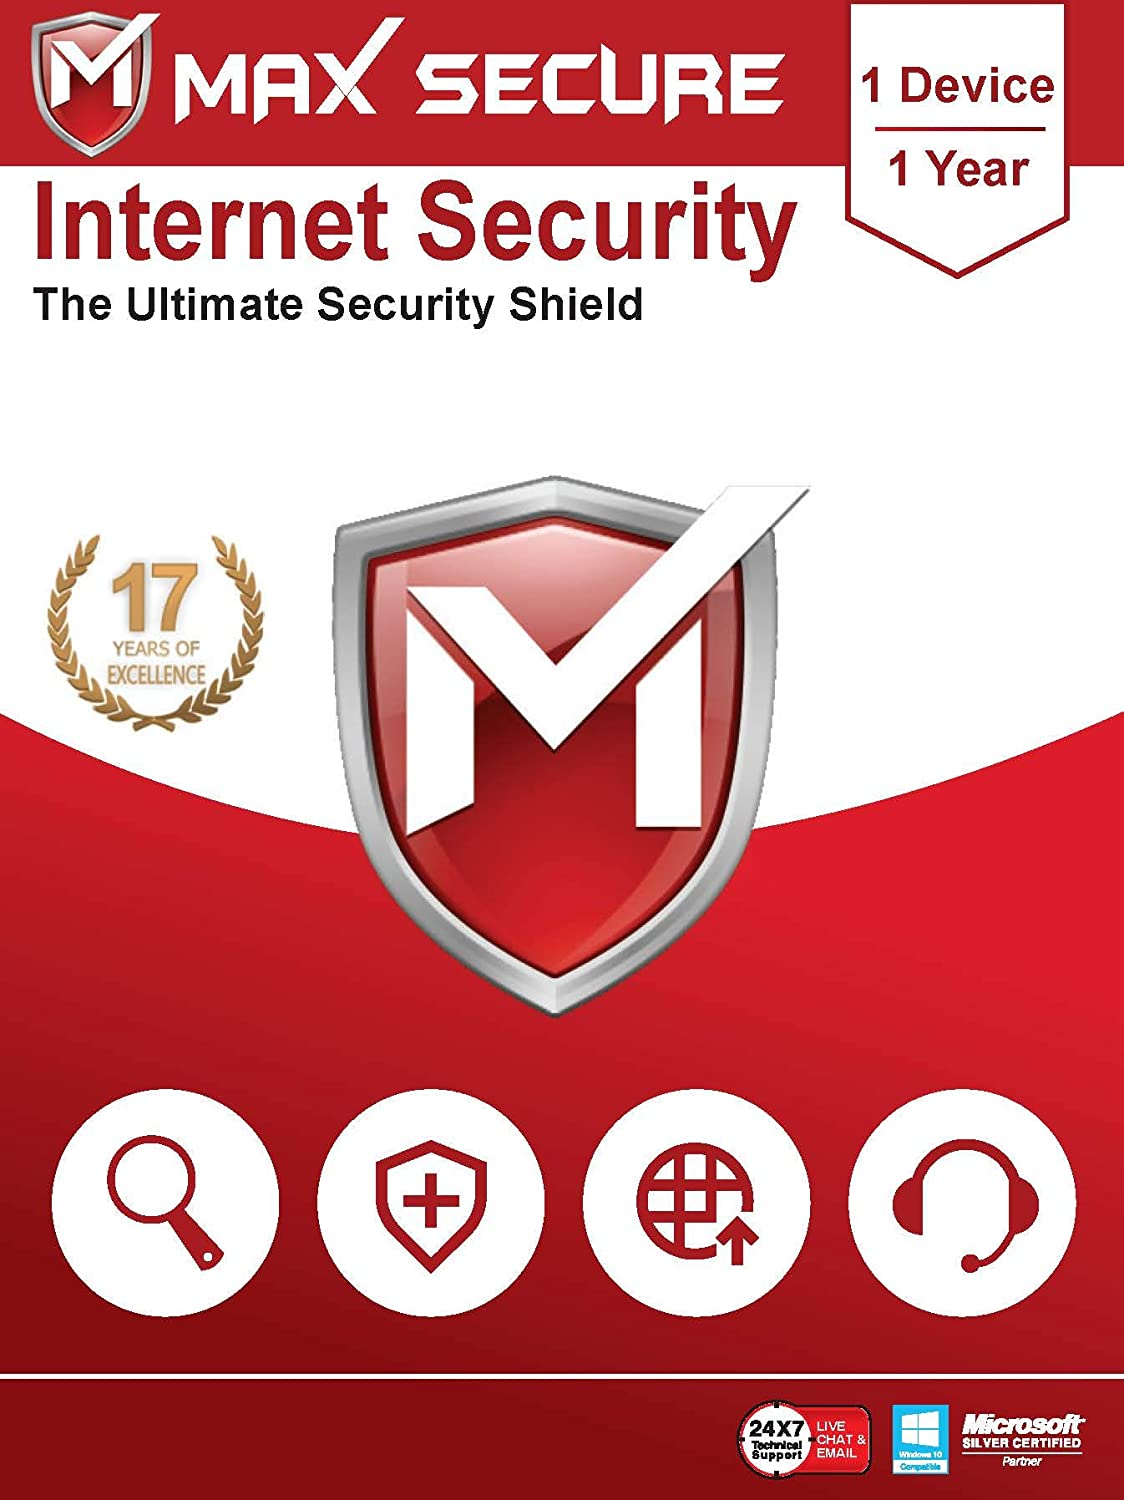 Max Secure Software Internet Security for PC 2019 | Antivirus | 1 Device | 1 Year (Activation Key Card)